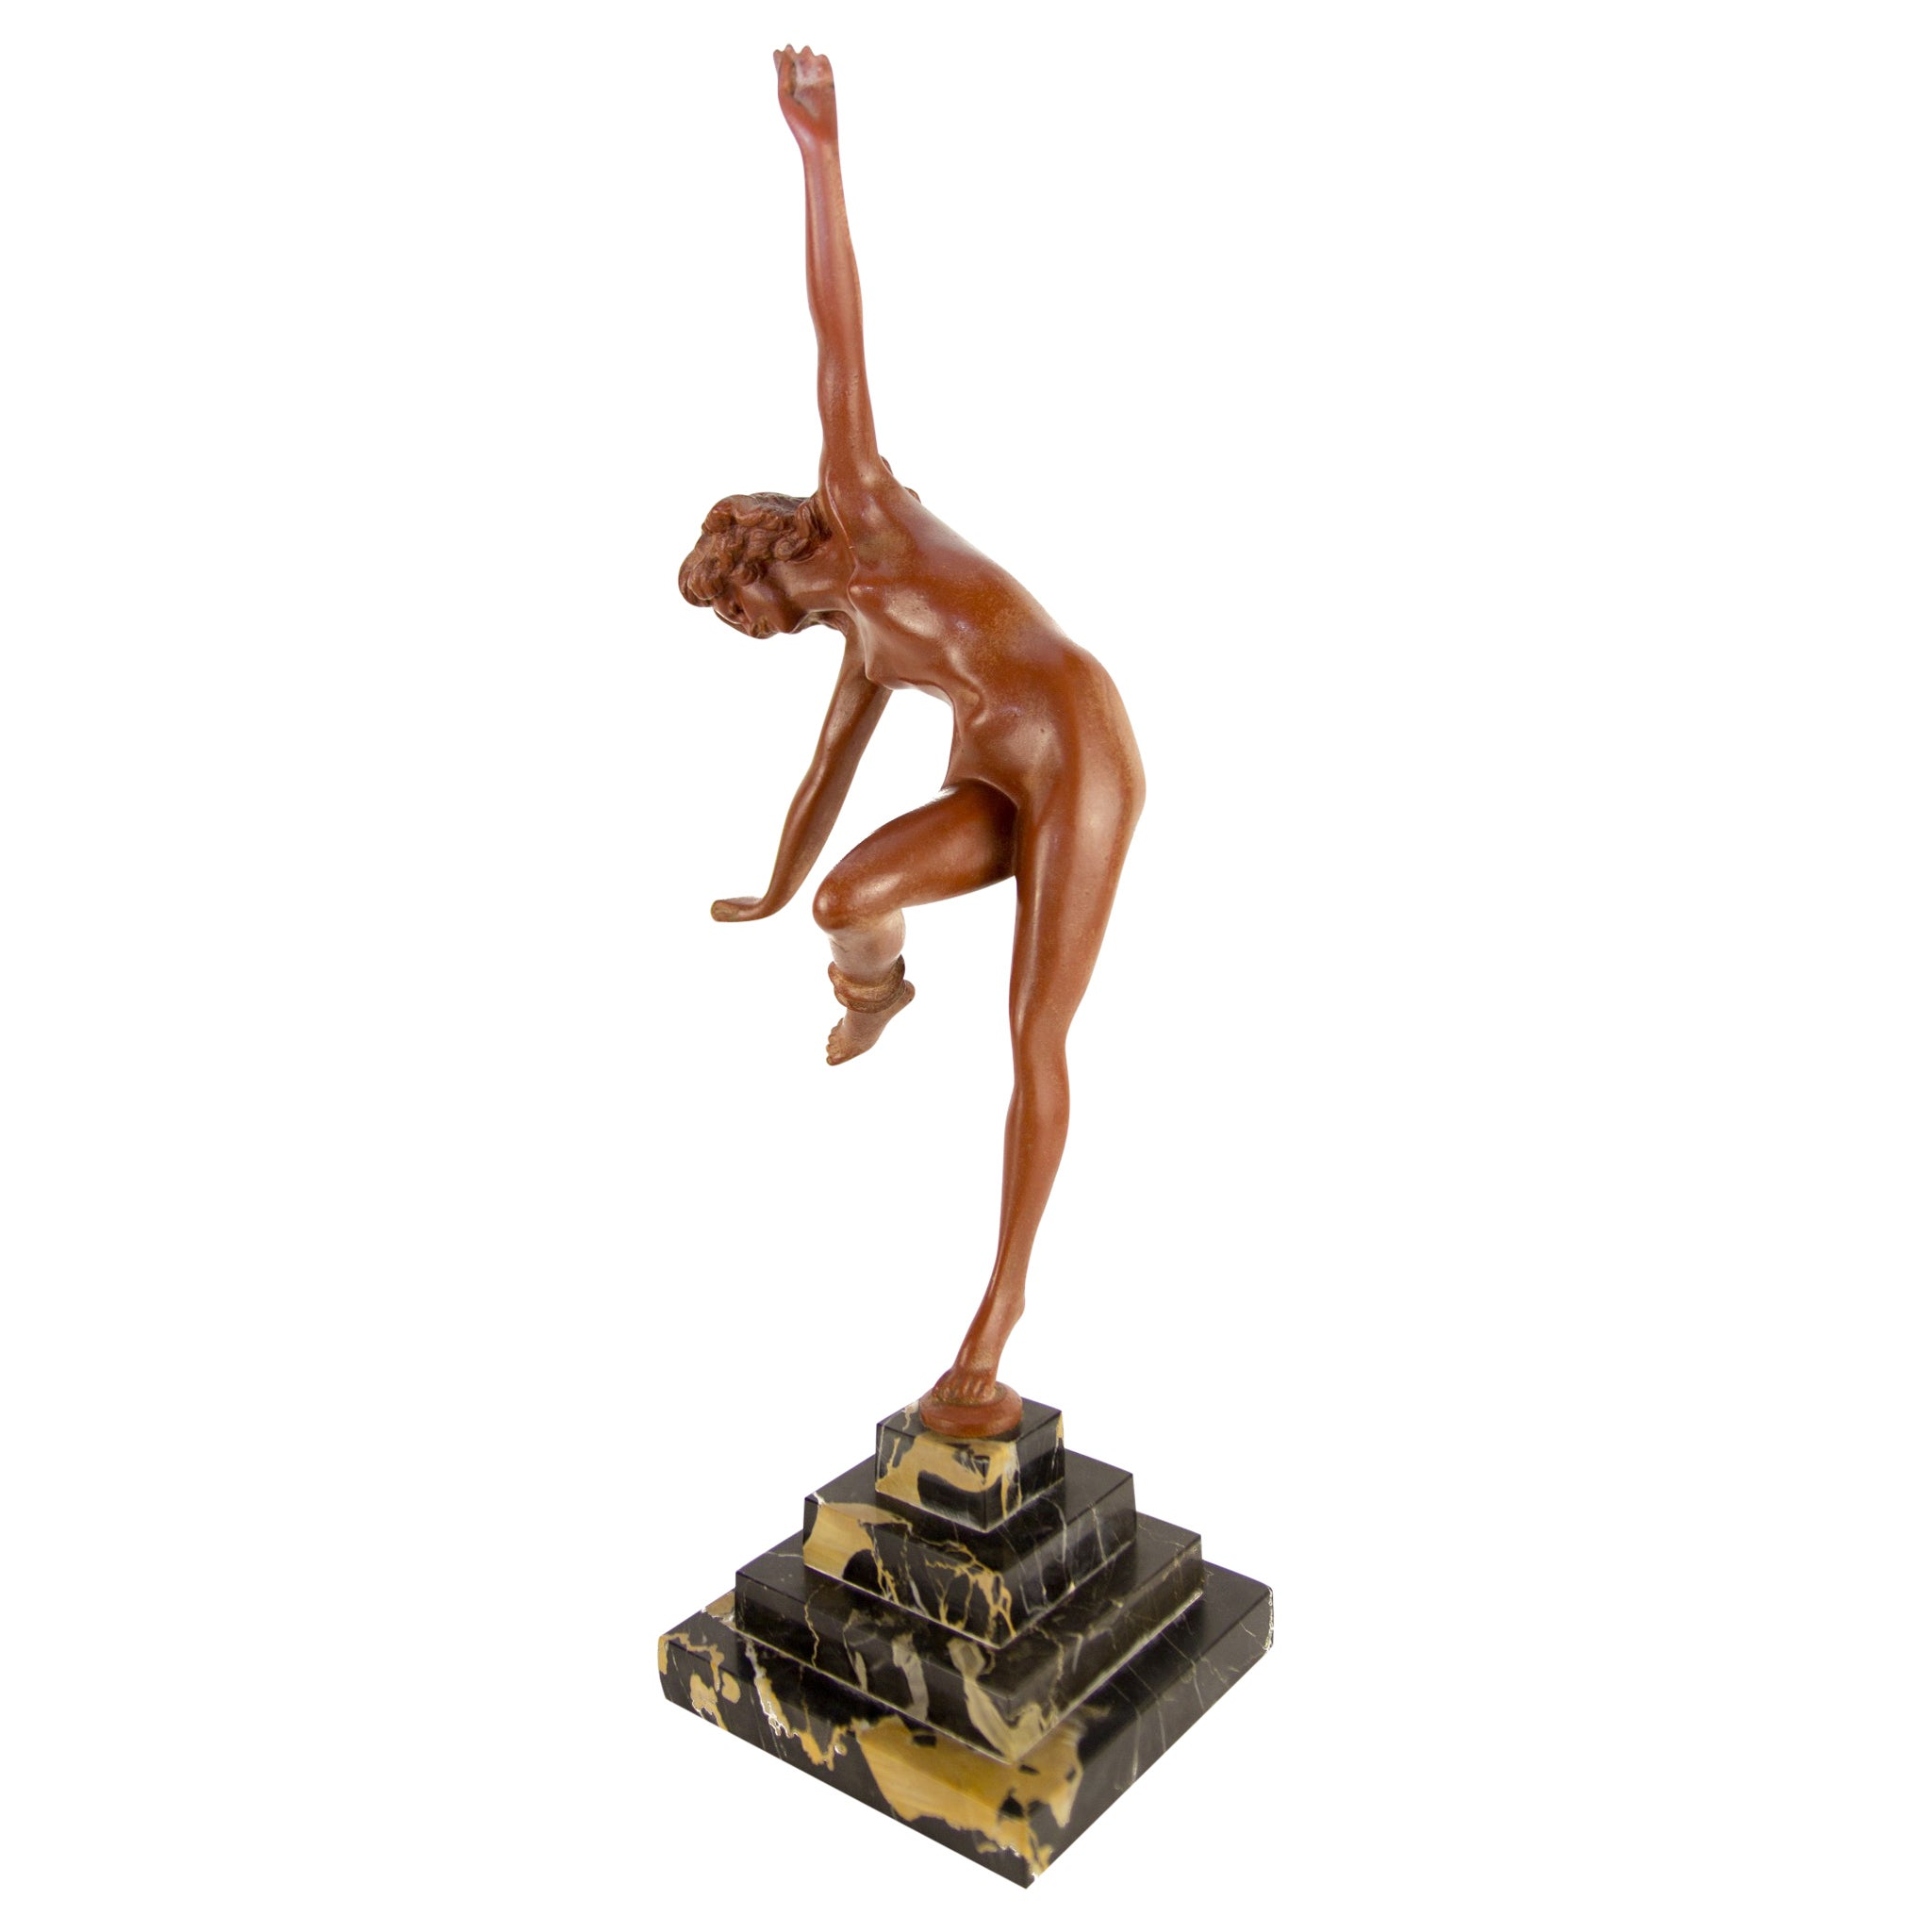 Art Deco Style Bronze Nude Lady with Snake Figure, The Snake Dancer, 1920's